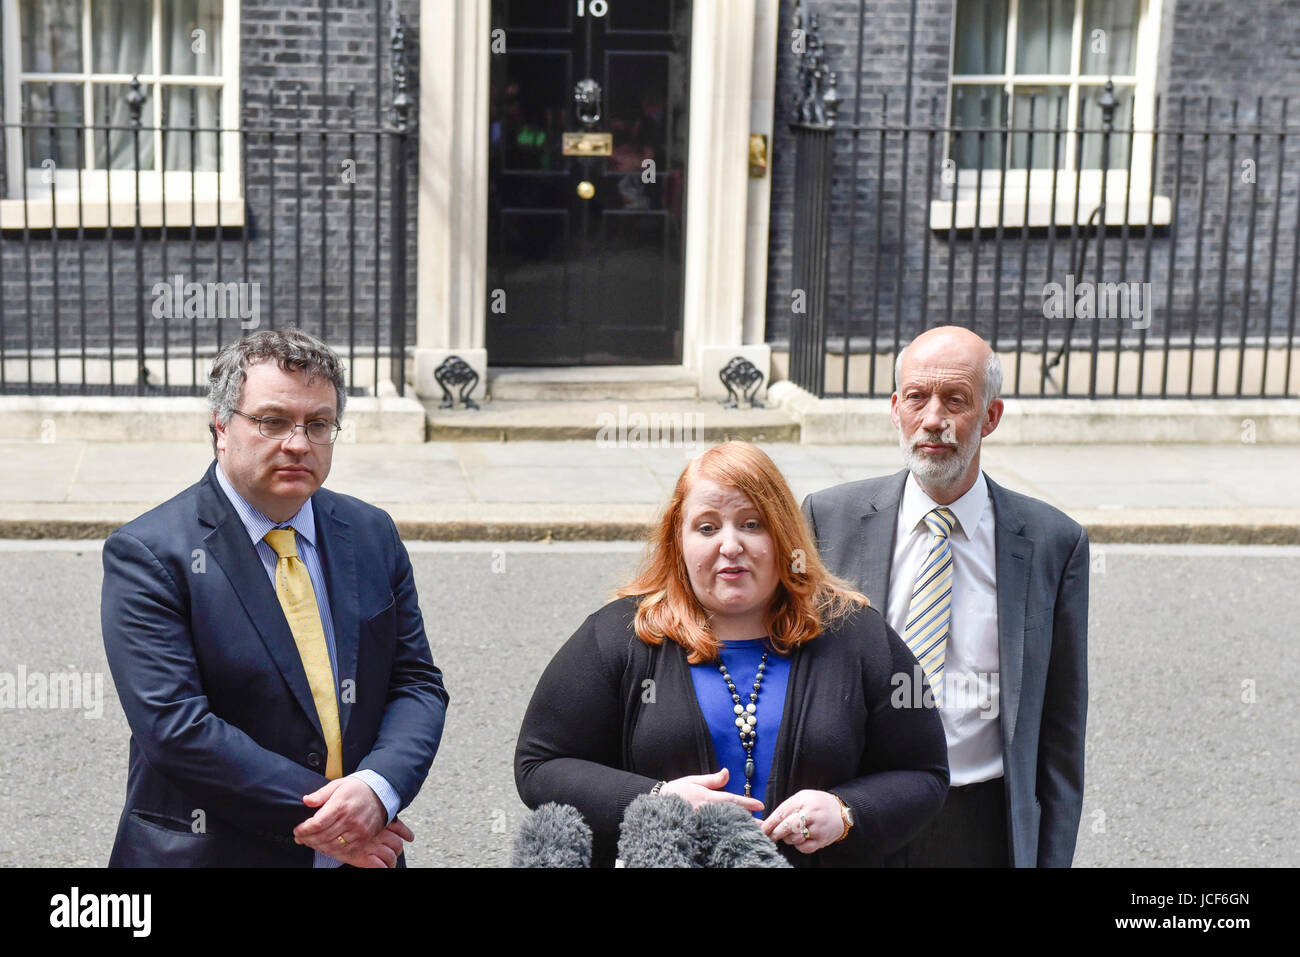 London, UK. 15th June, 2017. Naomi Long, leader of the Alliance Party, flanked by (L) Stephen Farry and (R) David - Stock Image